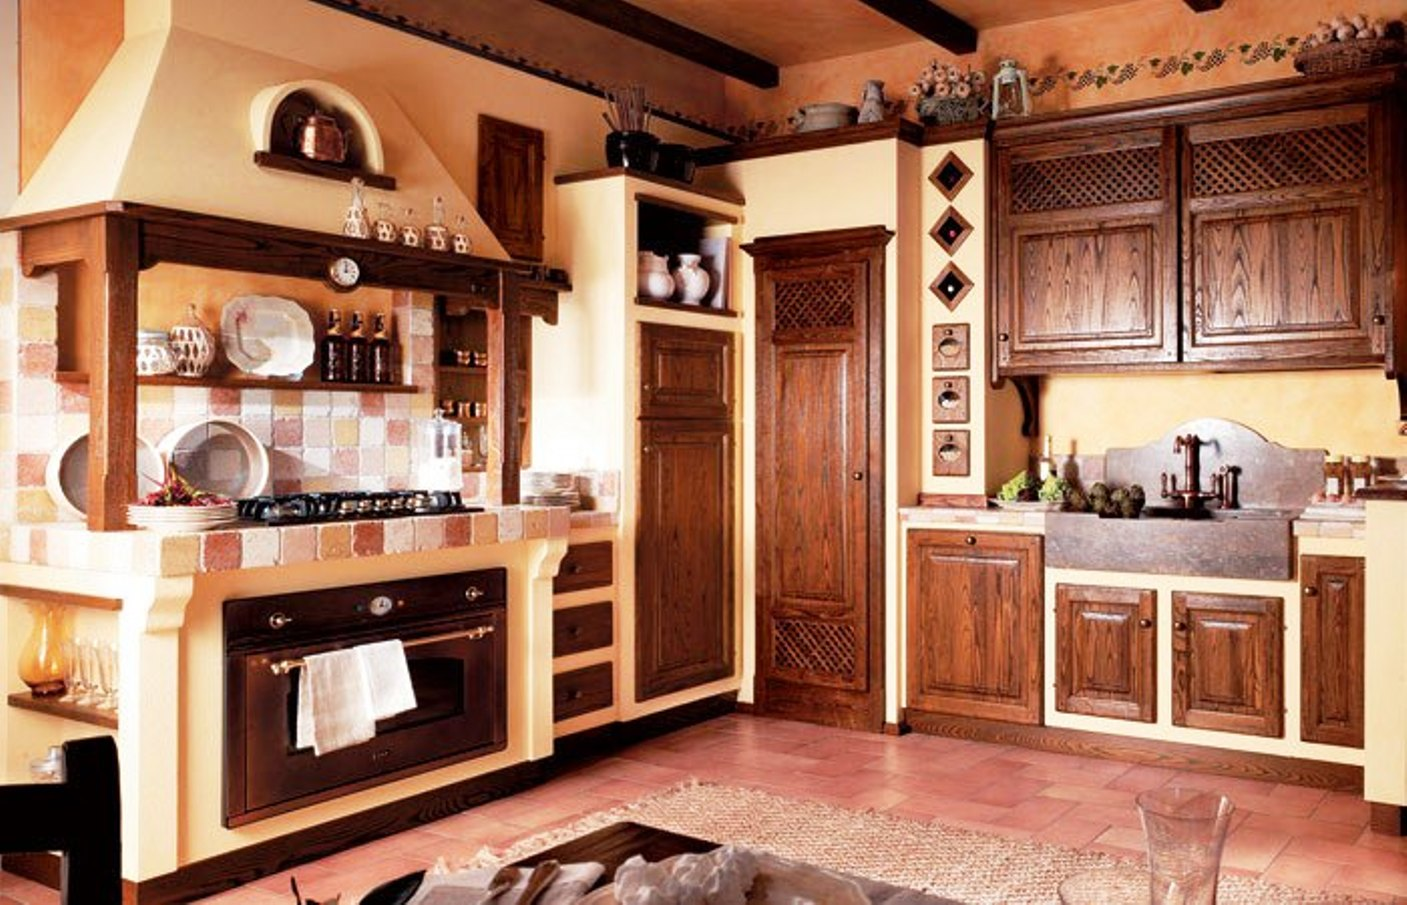 Cucine country in muratura ua84 regardsdefemmes for Cucine stile country